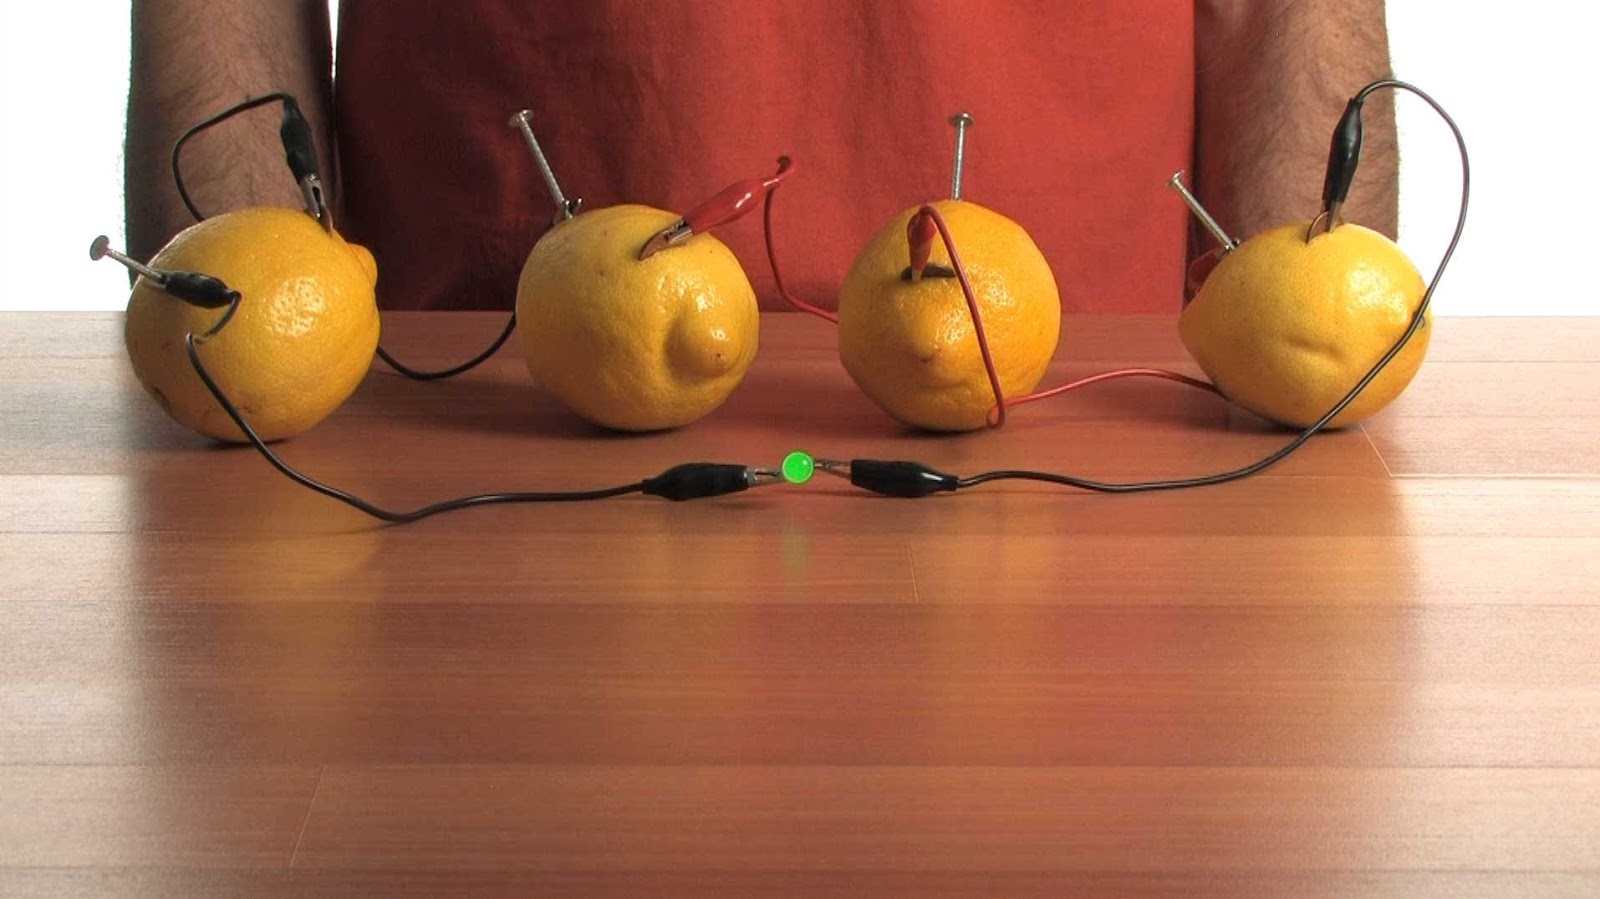 Make Electricity from fruits